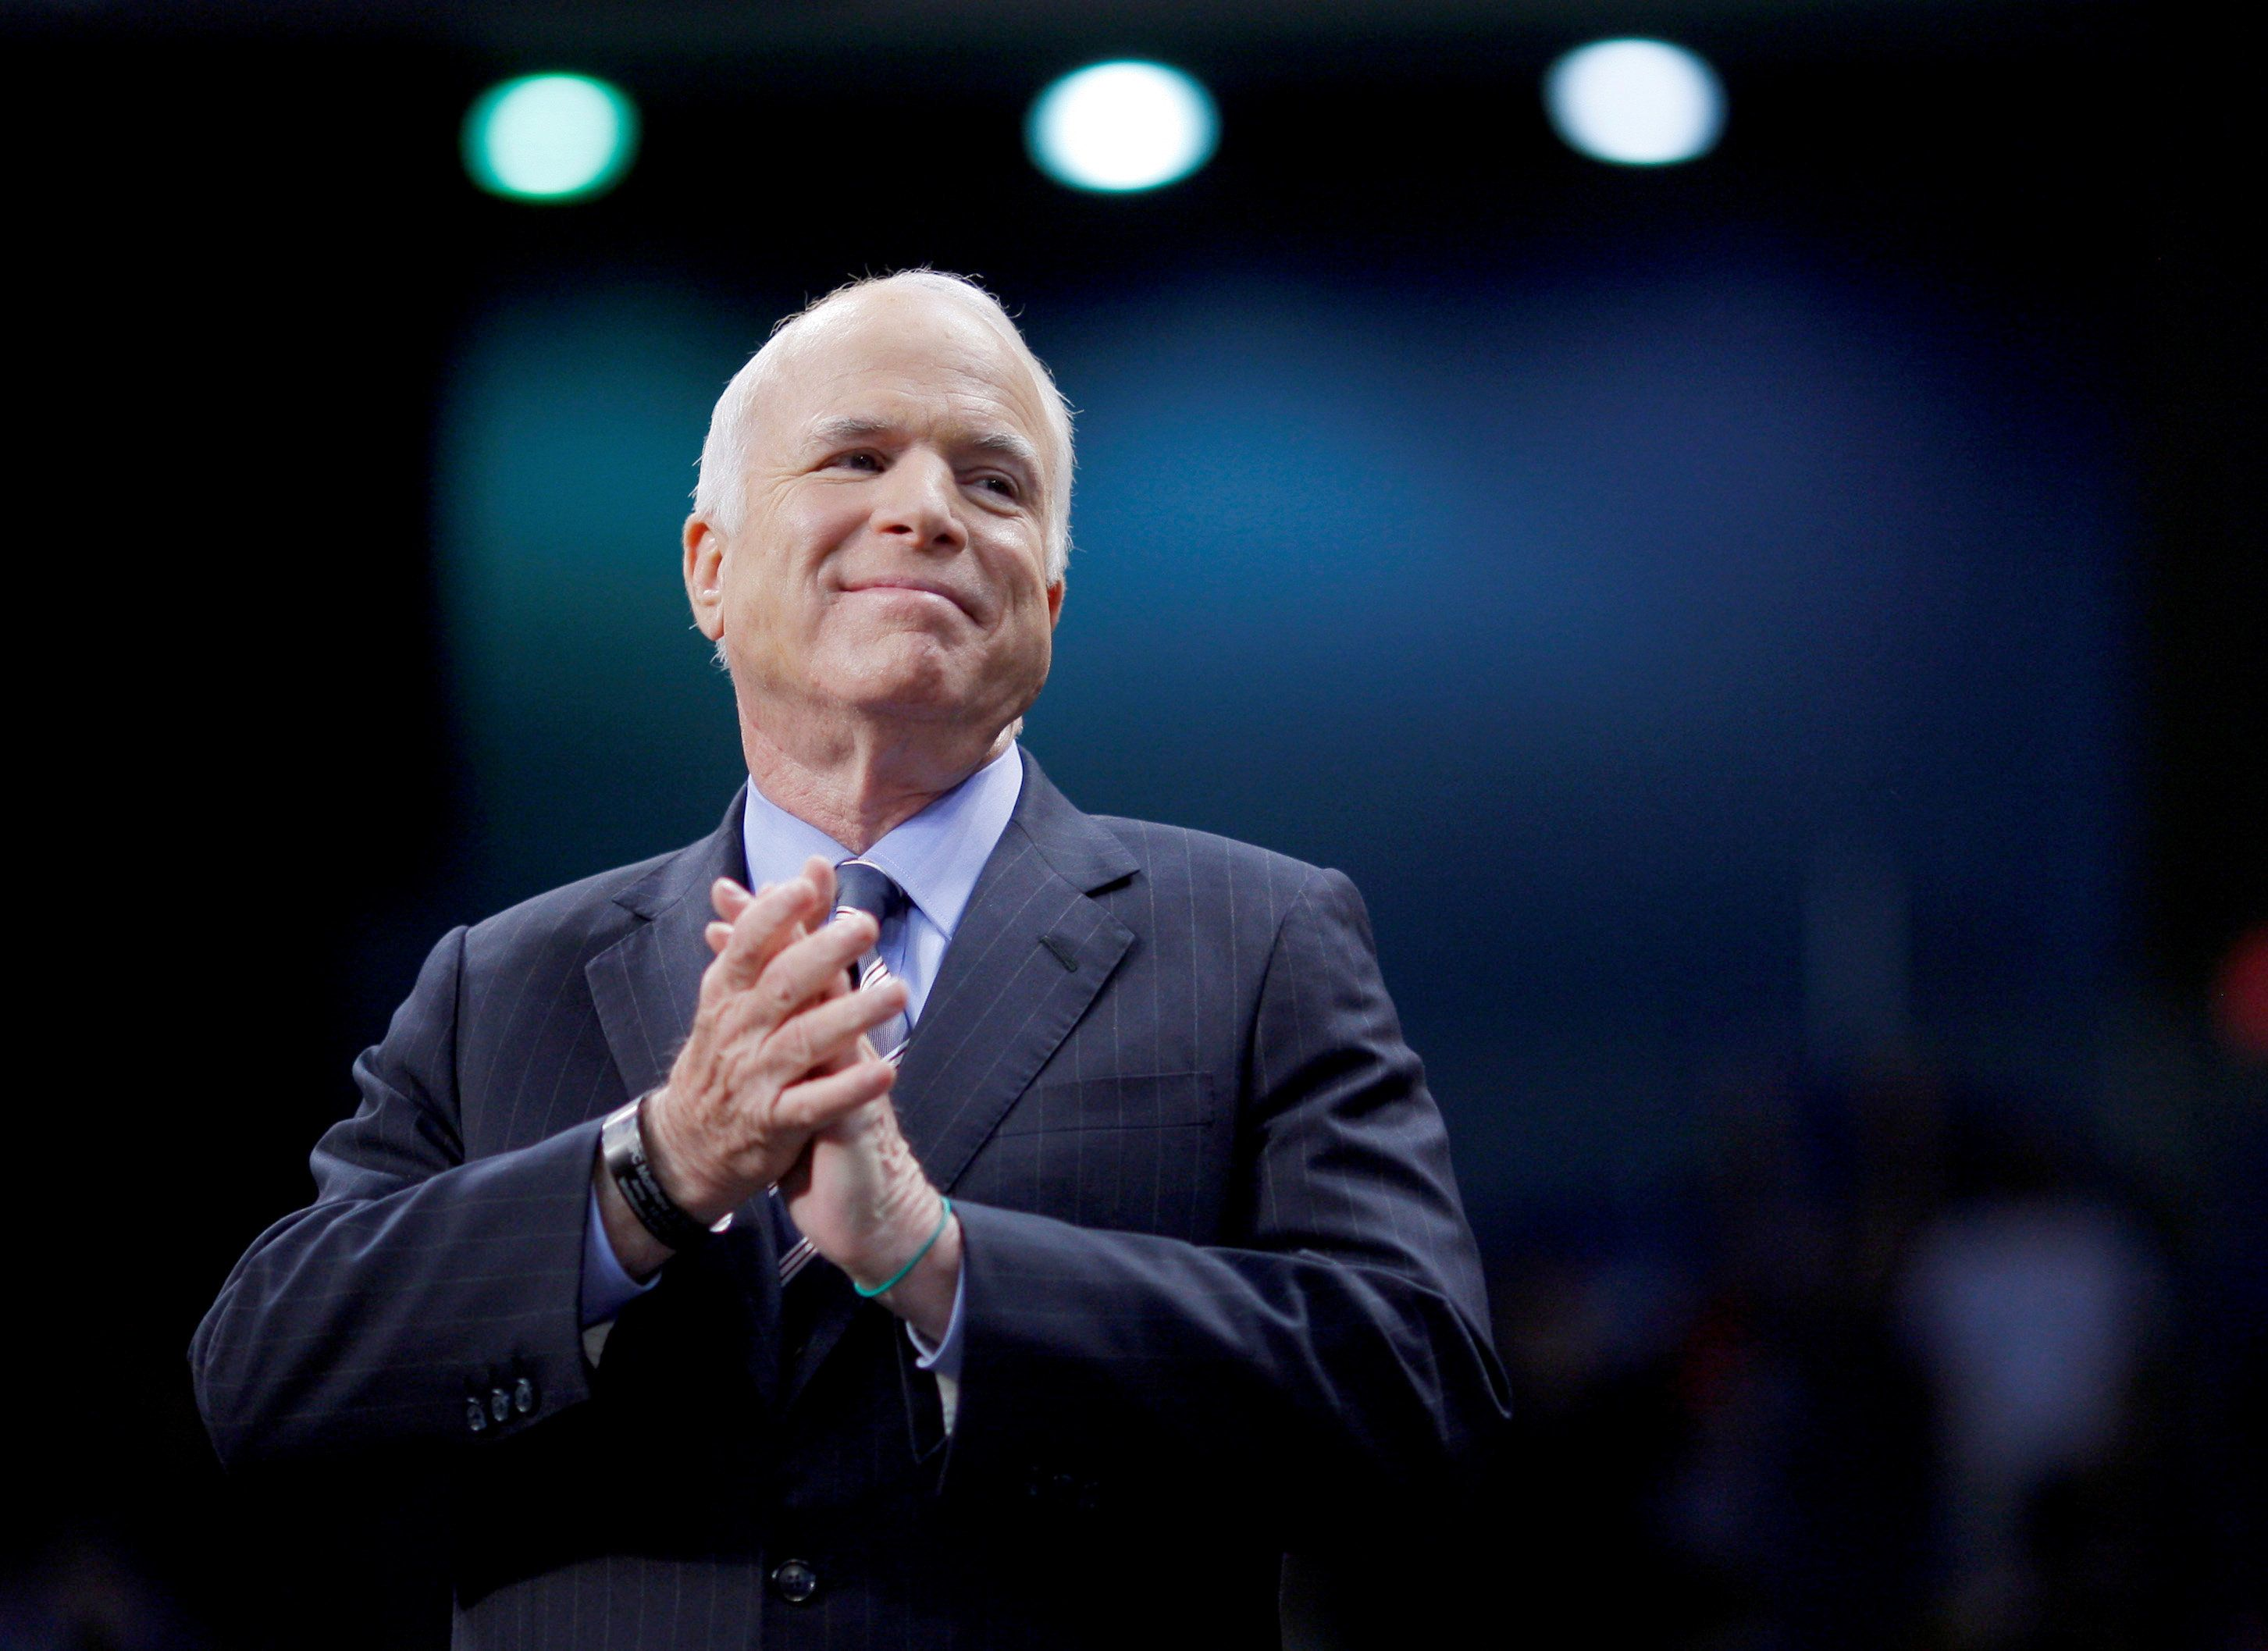 FILE PHOTO- U.S. Republican presidential nominee Senator John McCain (R-AZ) listens as he is introduced at a campaign rally in Fayetteville, North Carolina, U.S. on October 28, 2008.   REUTERS/Brian Snyder/File Photo